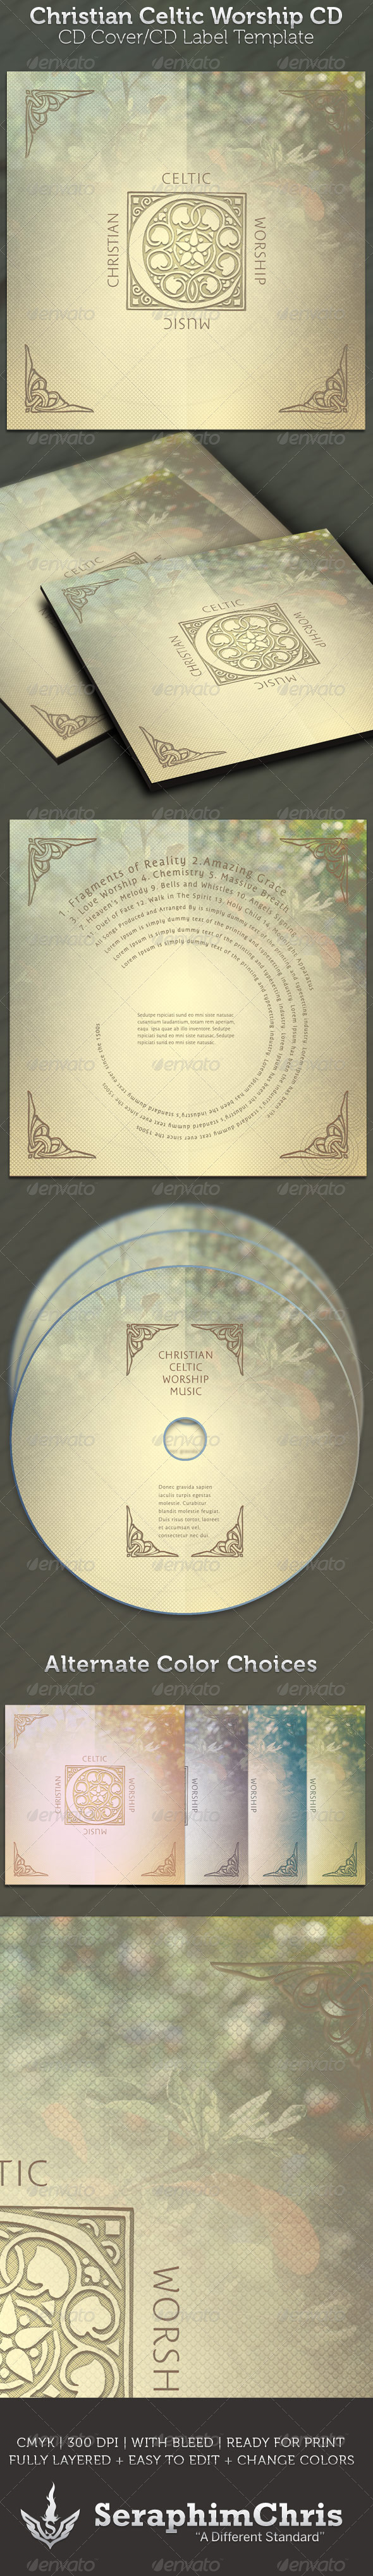 GraphicRiver Celtic Christian Worship CD 2304896